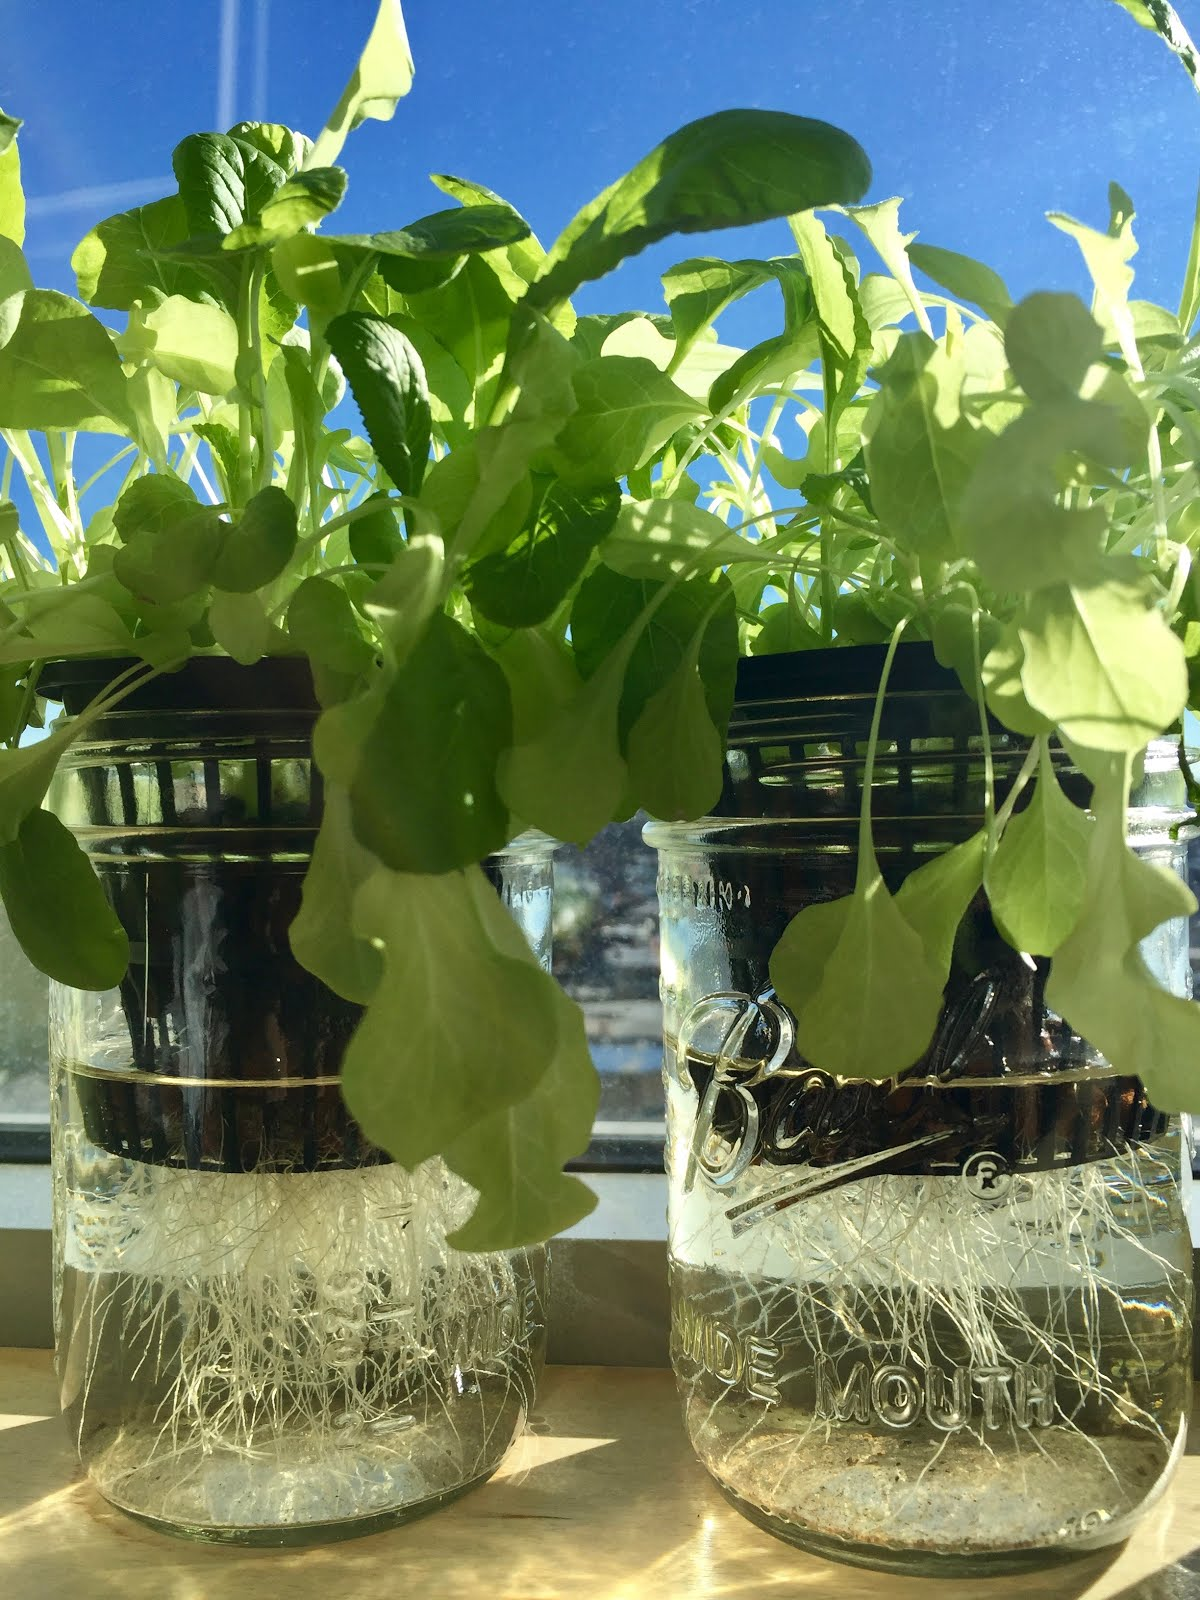 Pawat's Blog: Hydroponic Experiment: Kratky Method